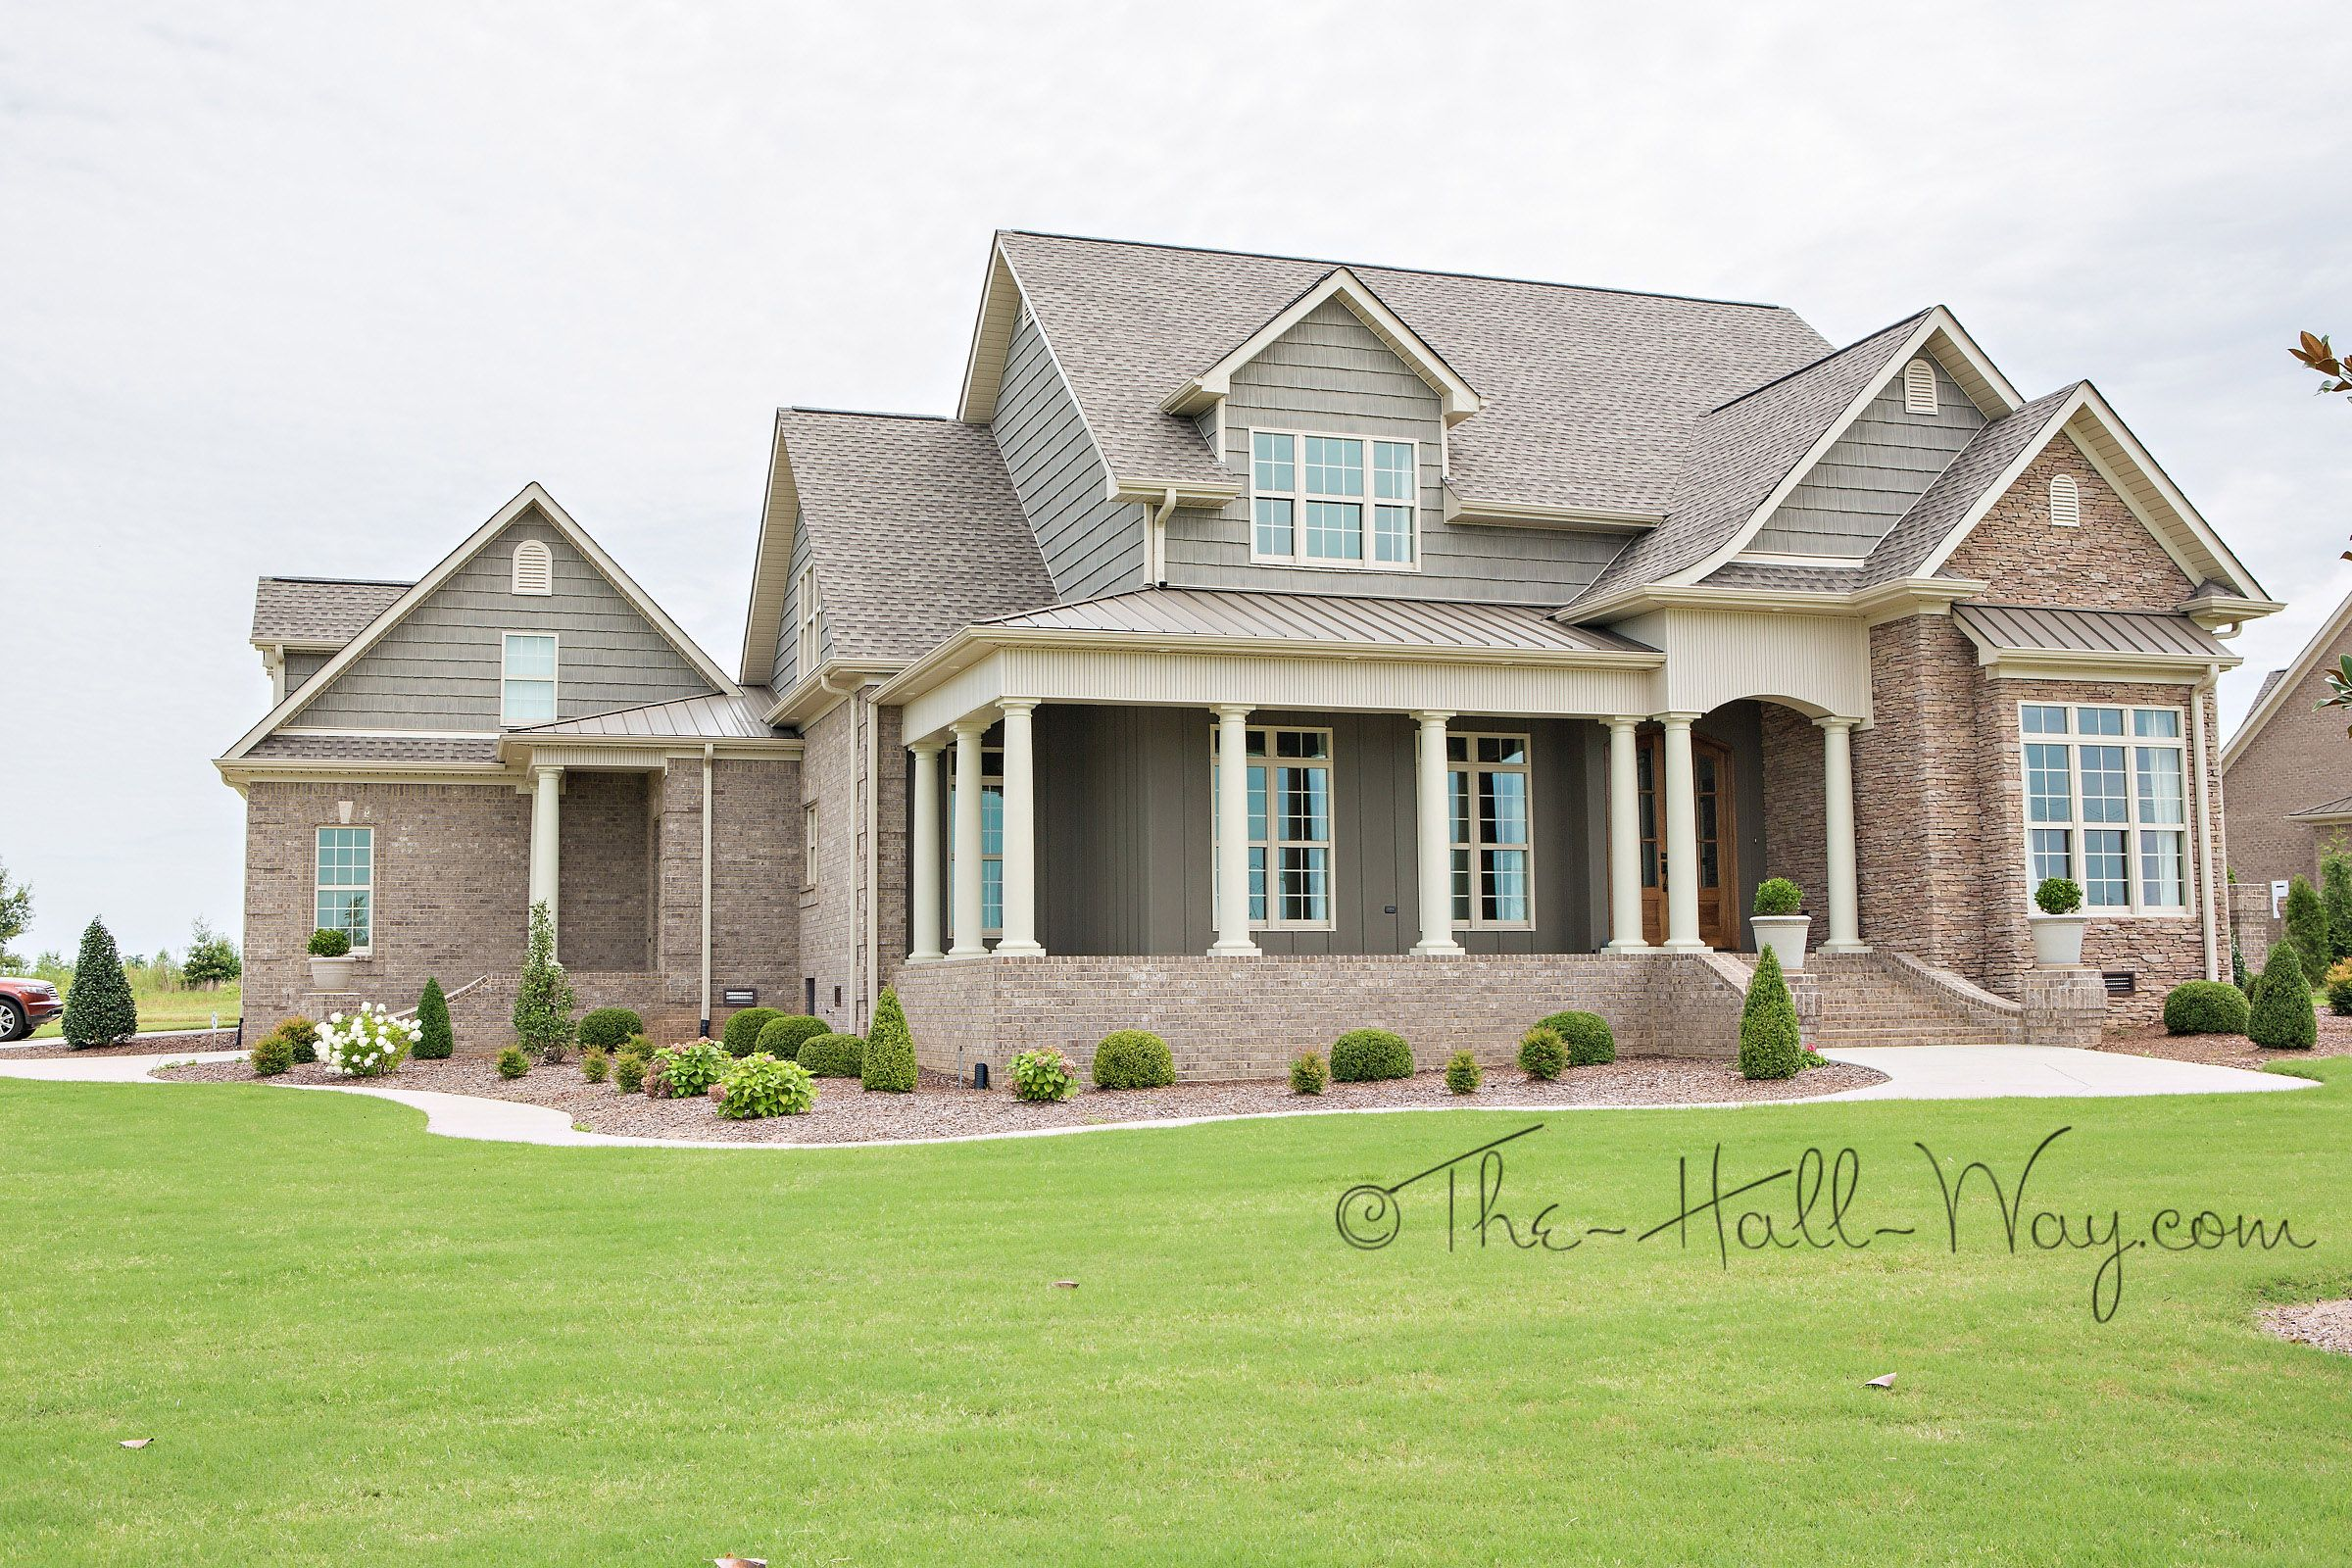 The Floor Plan Is A Southern Living Design By Mitchell Ginn Called The Shook Hill Visit The D Craftsman House Plans Southern House Plans Brick Exterior House